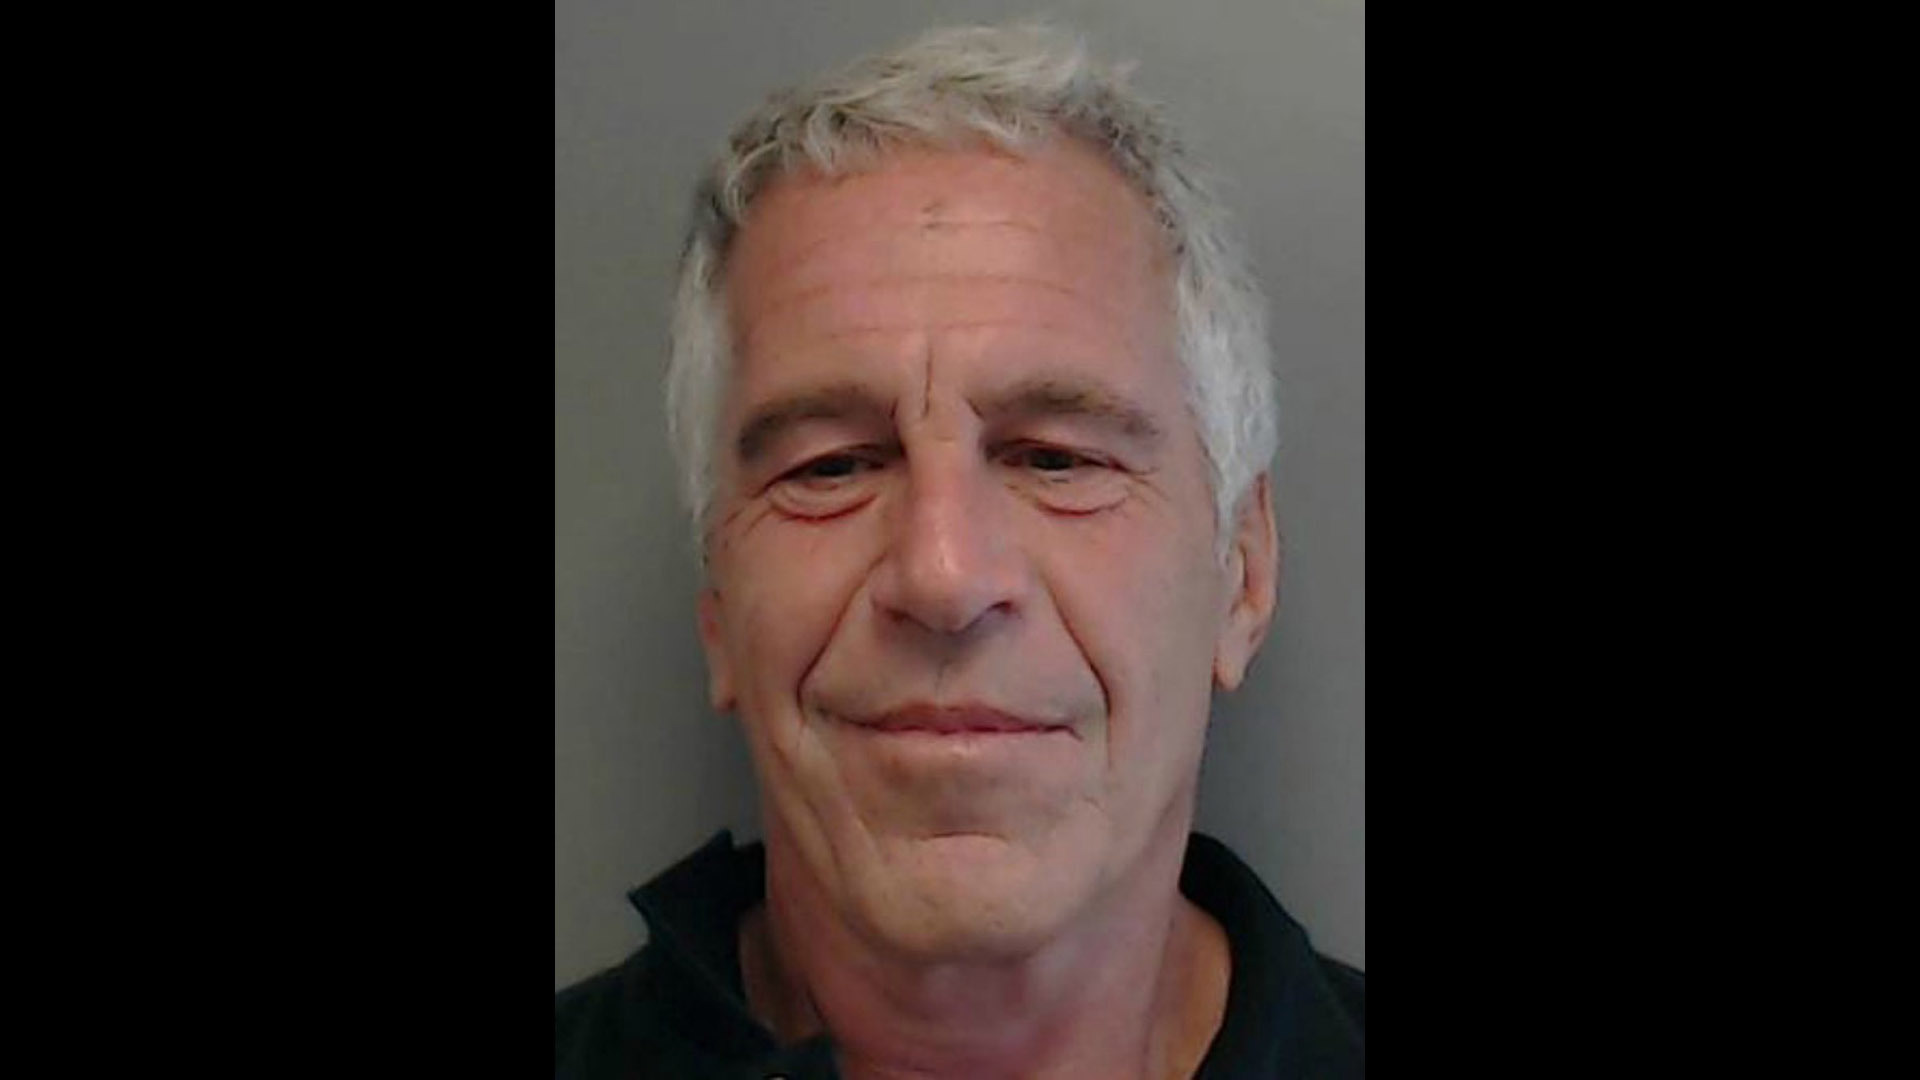 Report Manhattan Da Knew Epstein Was A Pedophile But